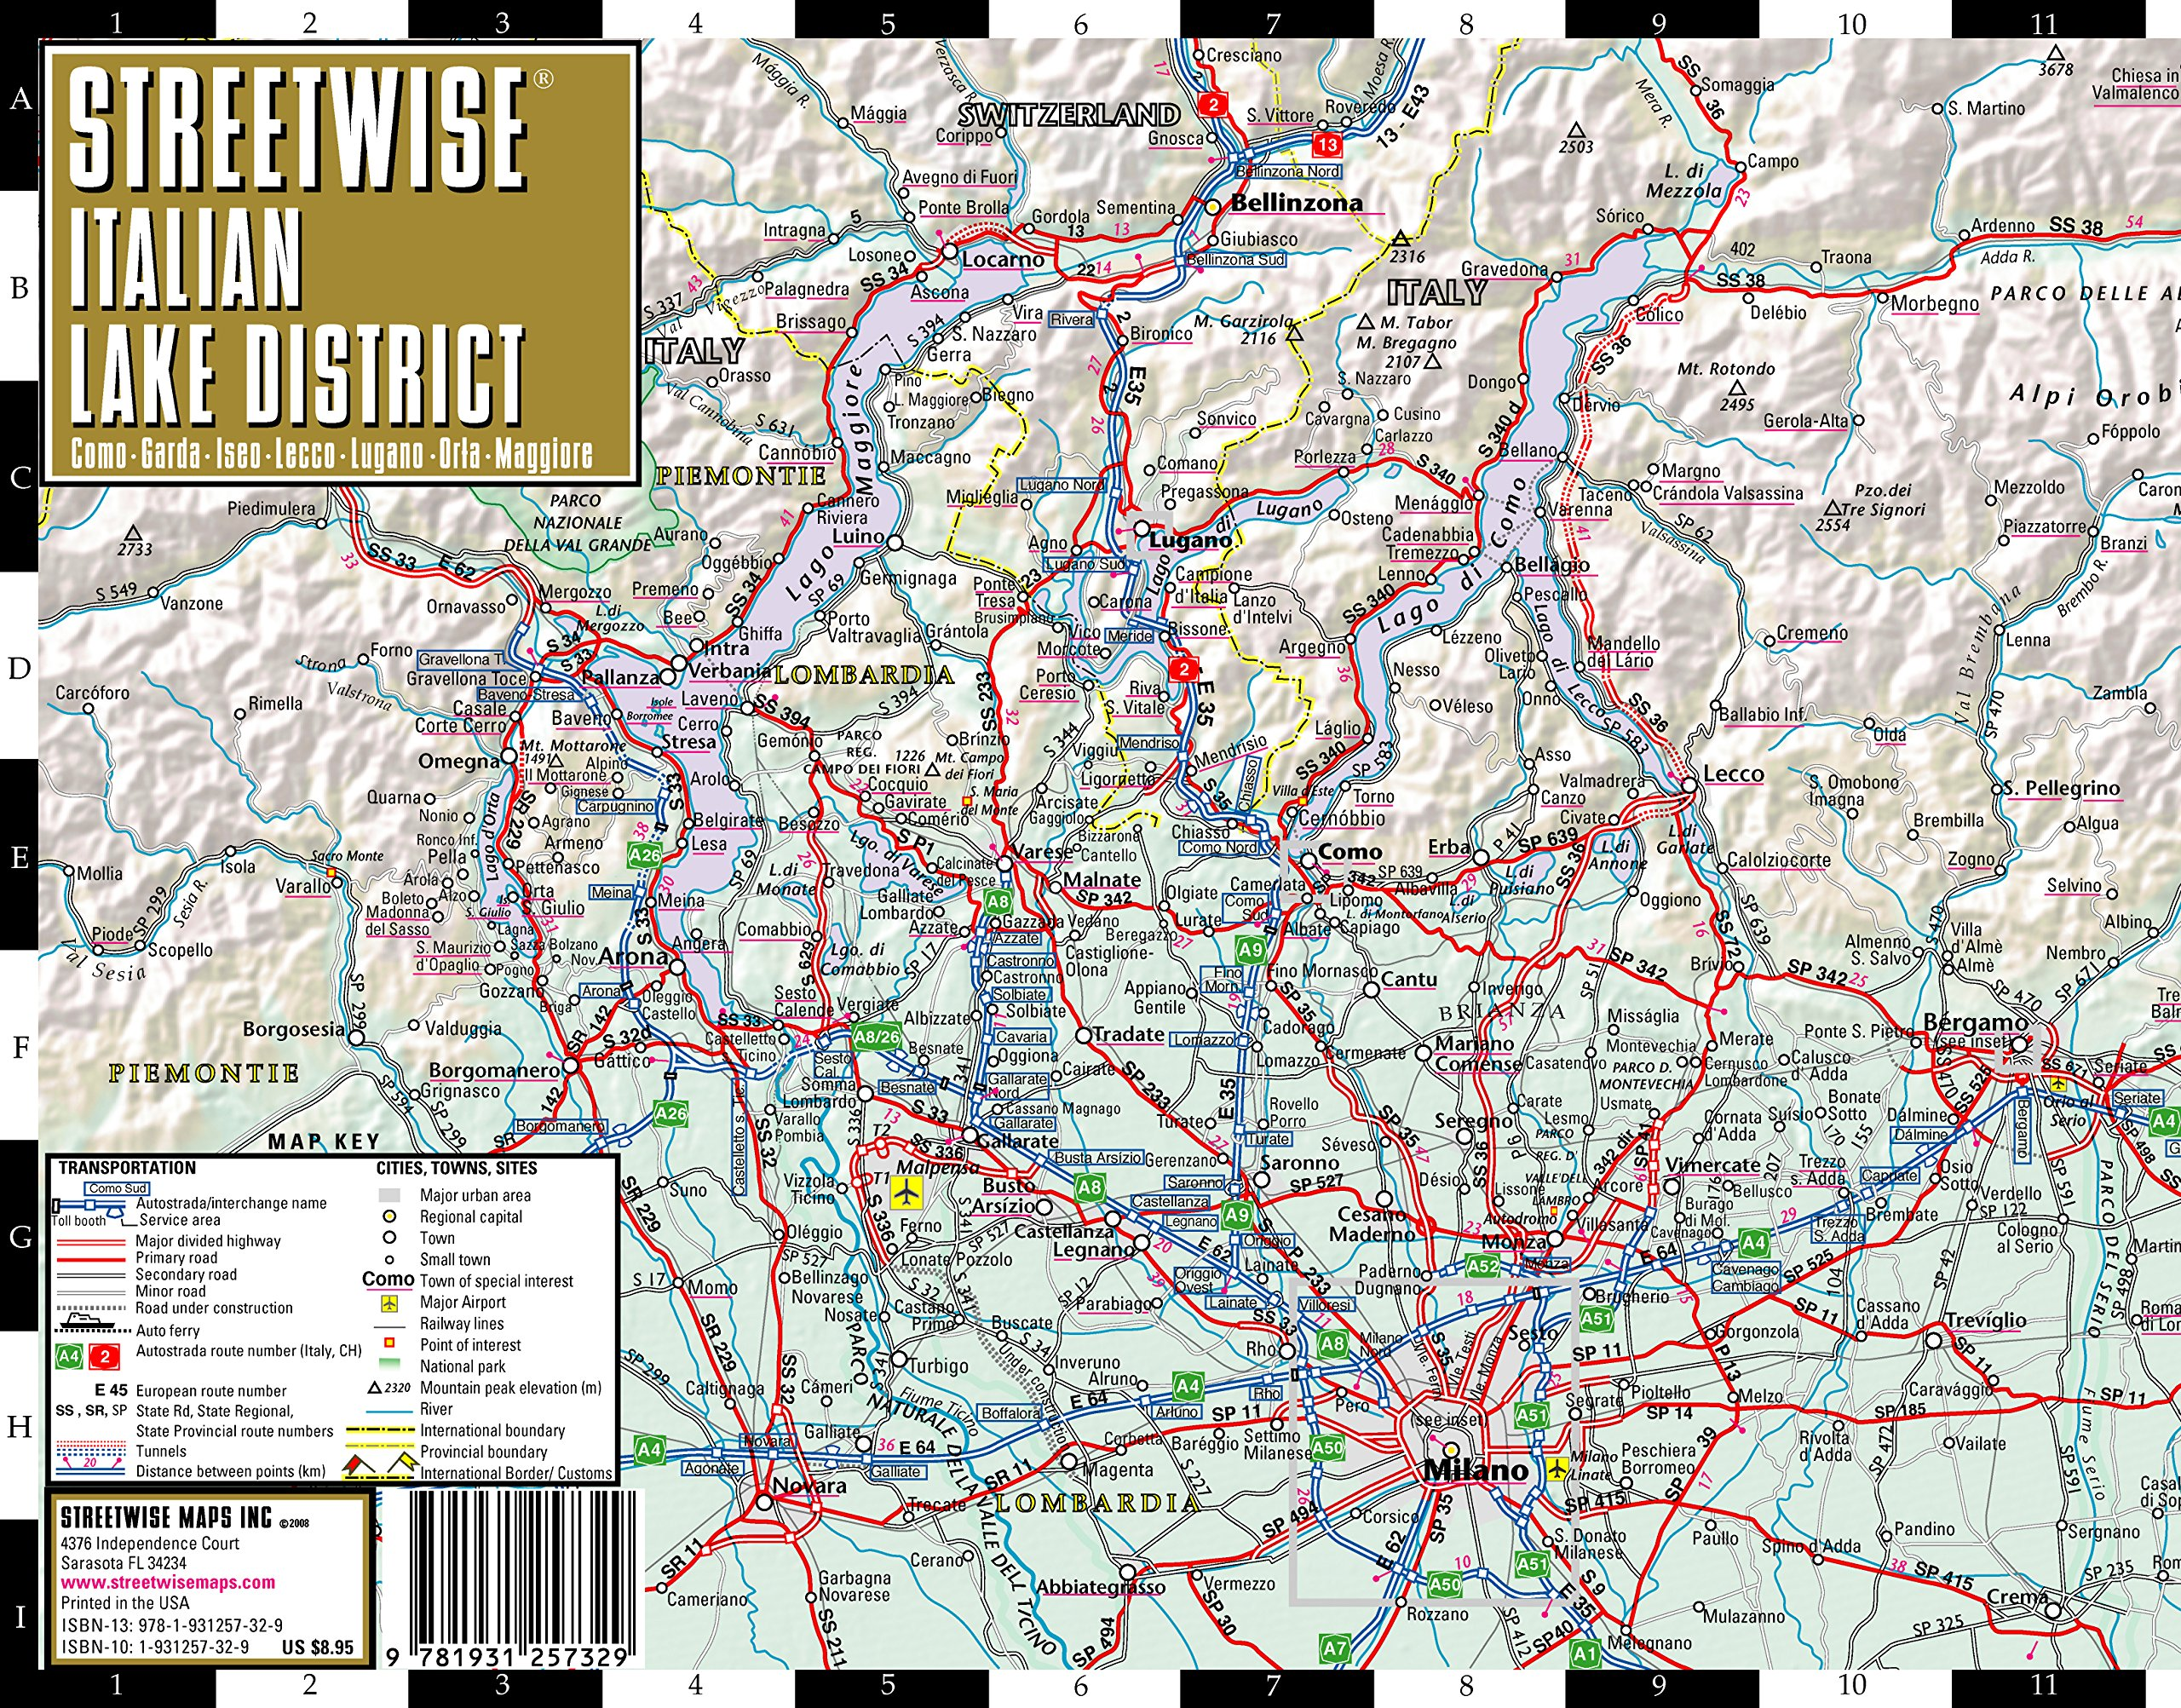 Streetwise Italian Lake District Map - Laminated Regional Map of the ...